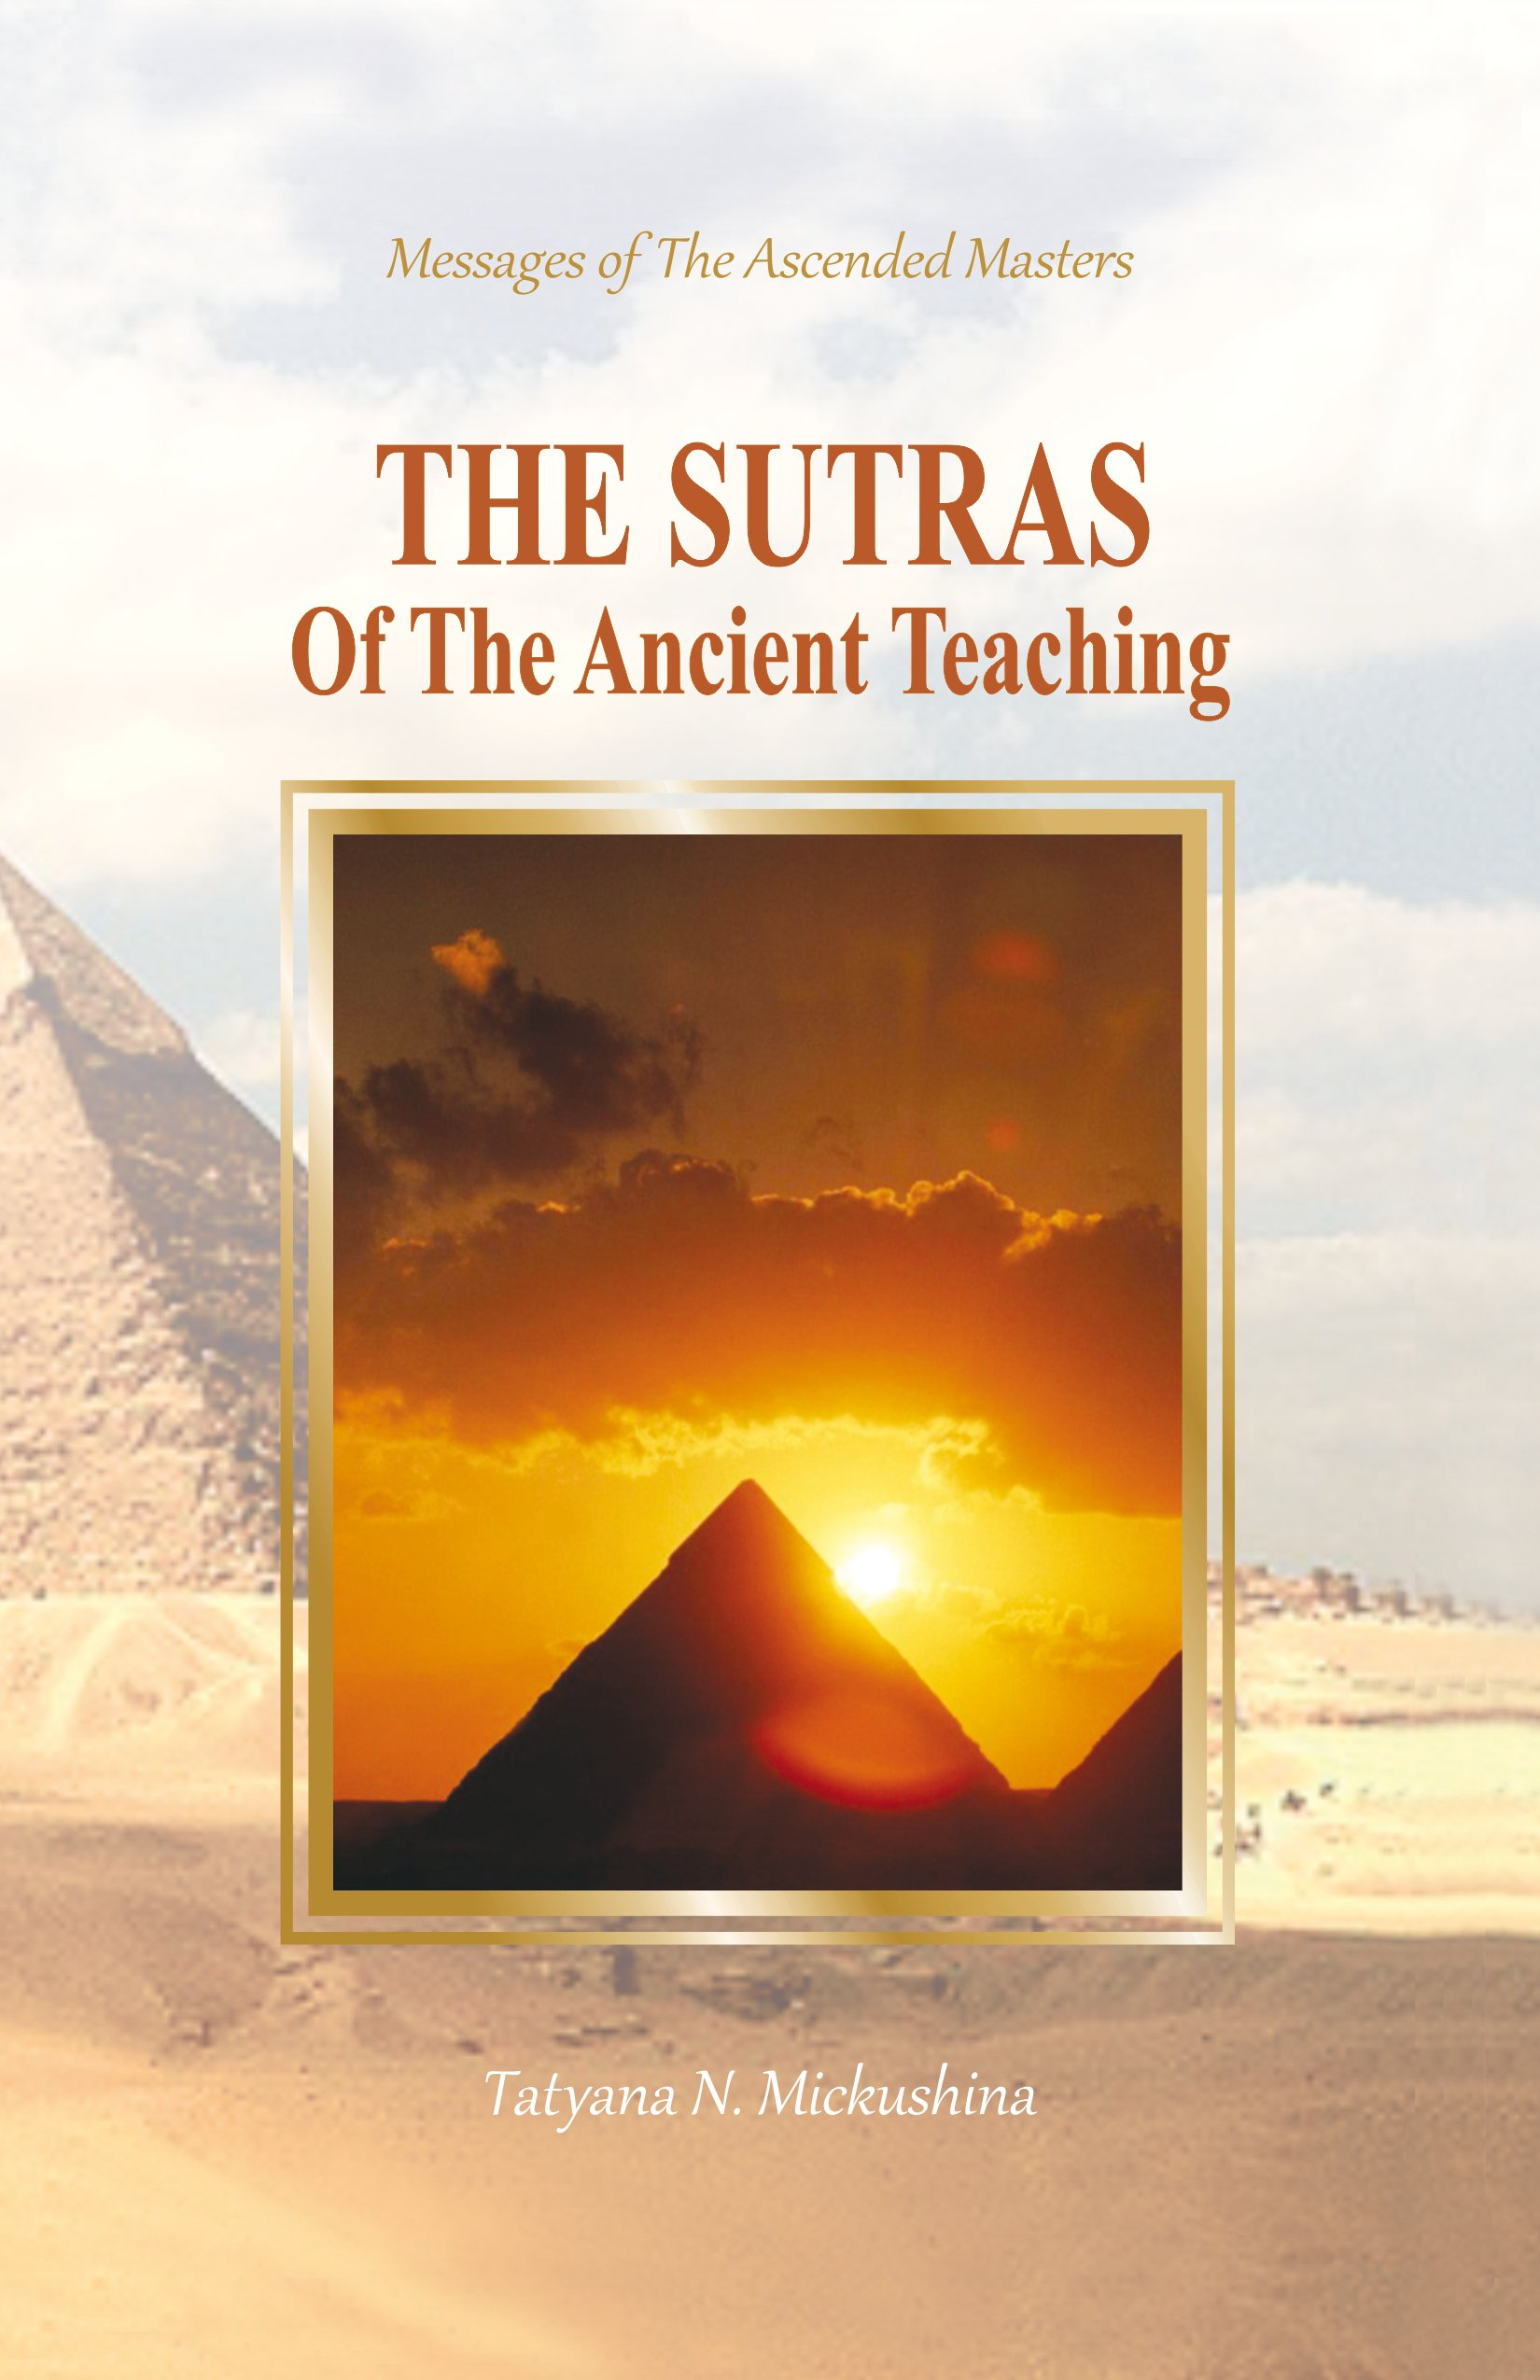 The Sutras Of The Ancient Teaching  The Messages Of The Ascended Masters Through T.N. Mickushina.  English Edition